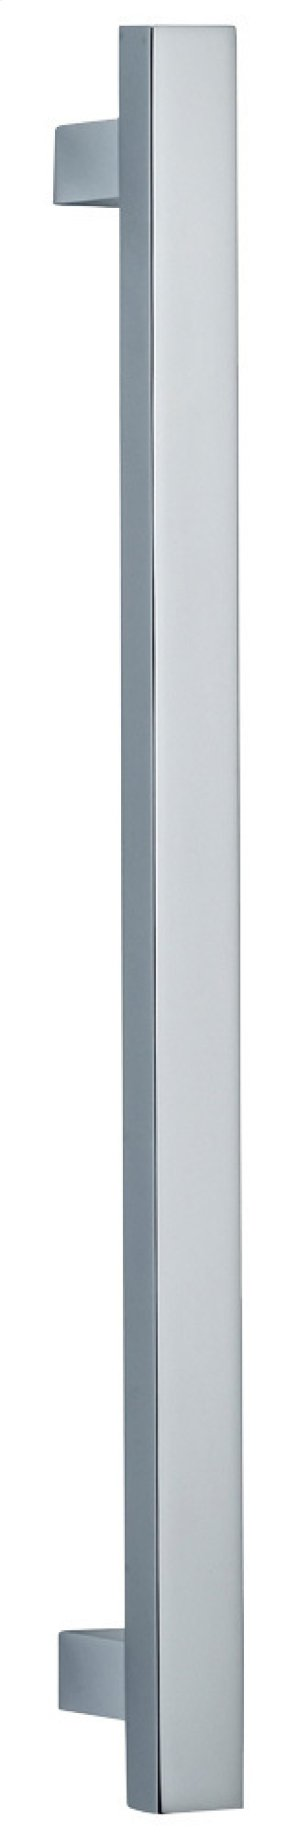 Modern Appliance/Door Pull in (Modern Appliance/Door Pull - Solid Brass) Product Image